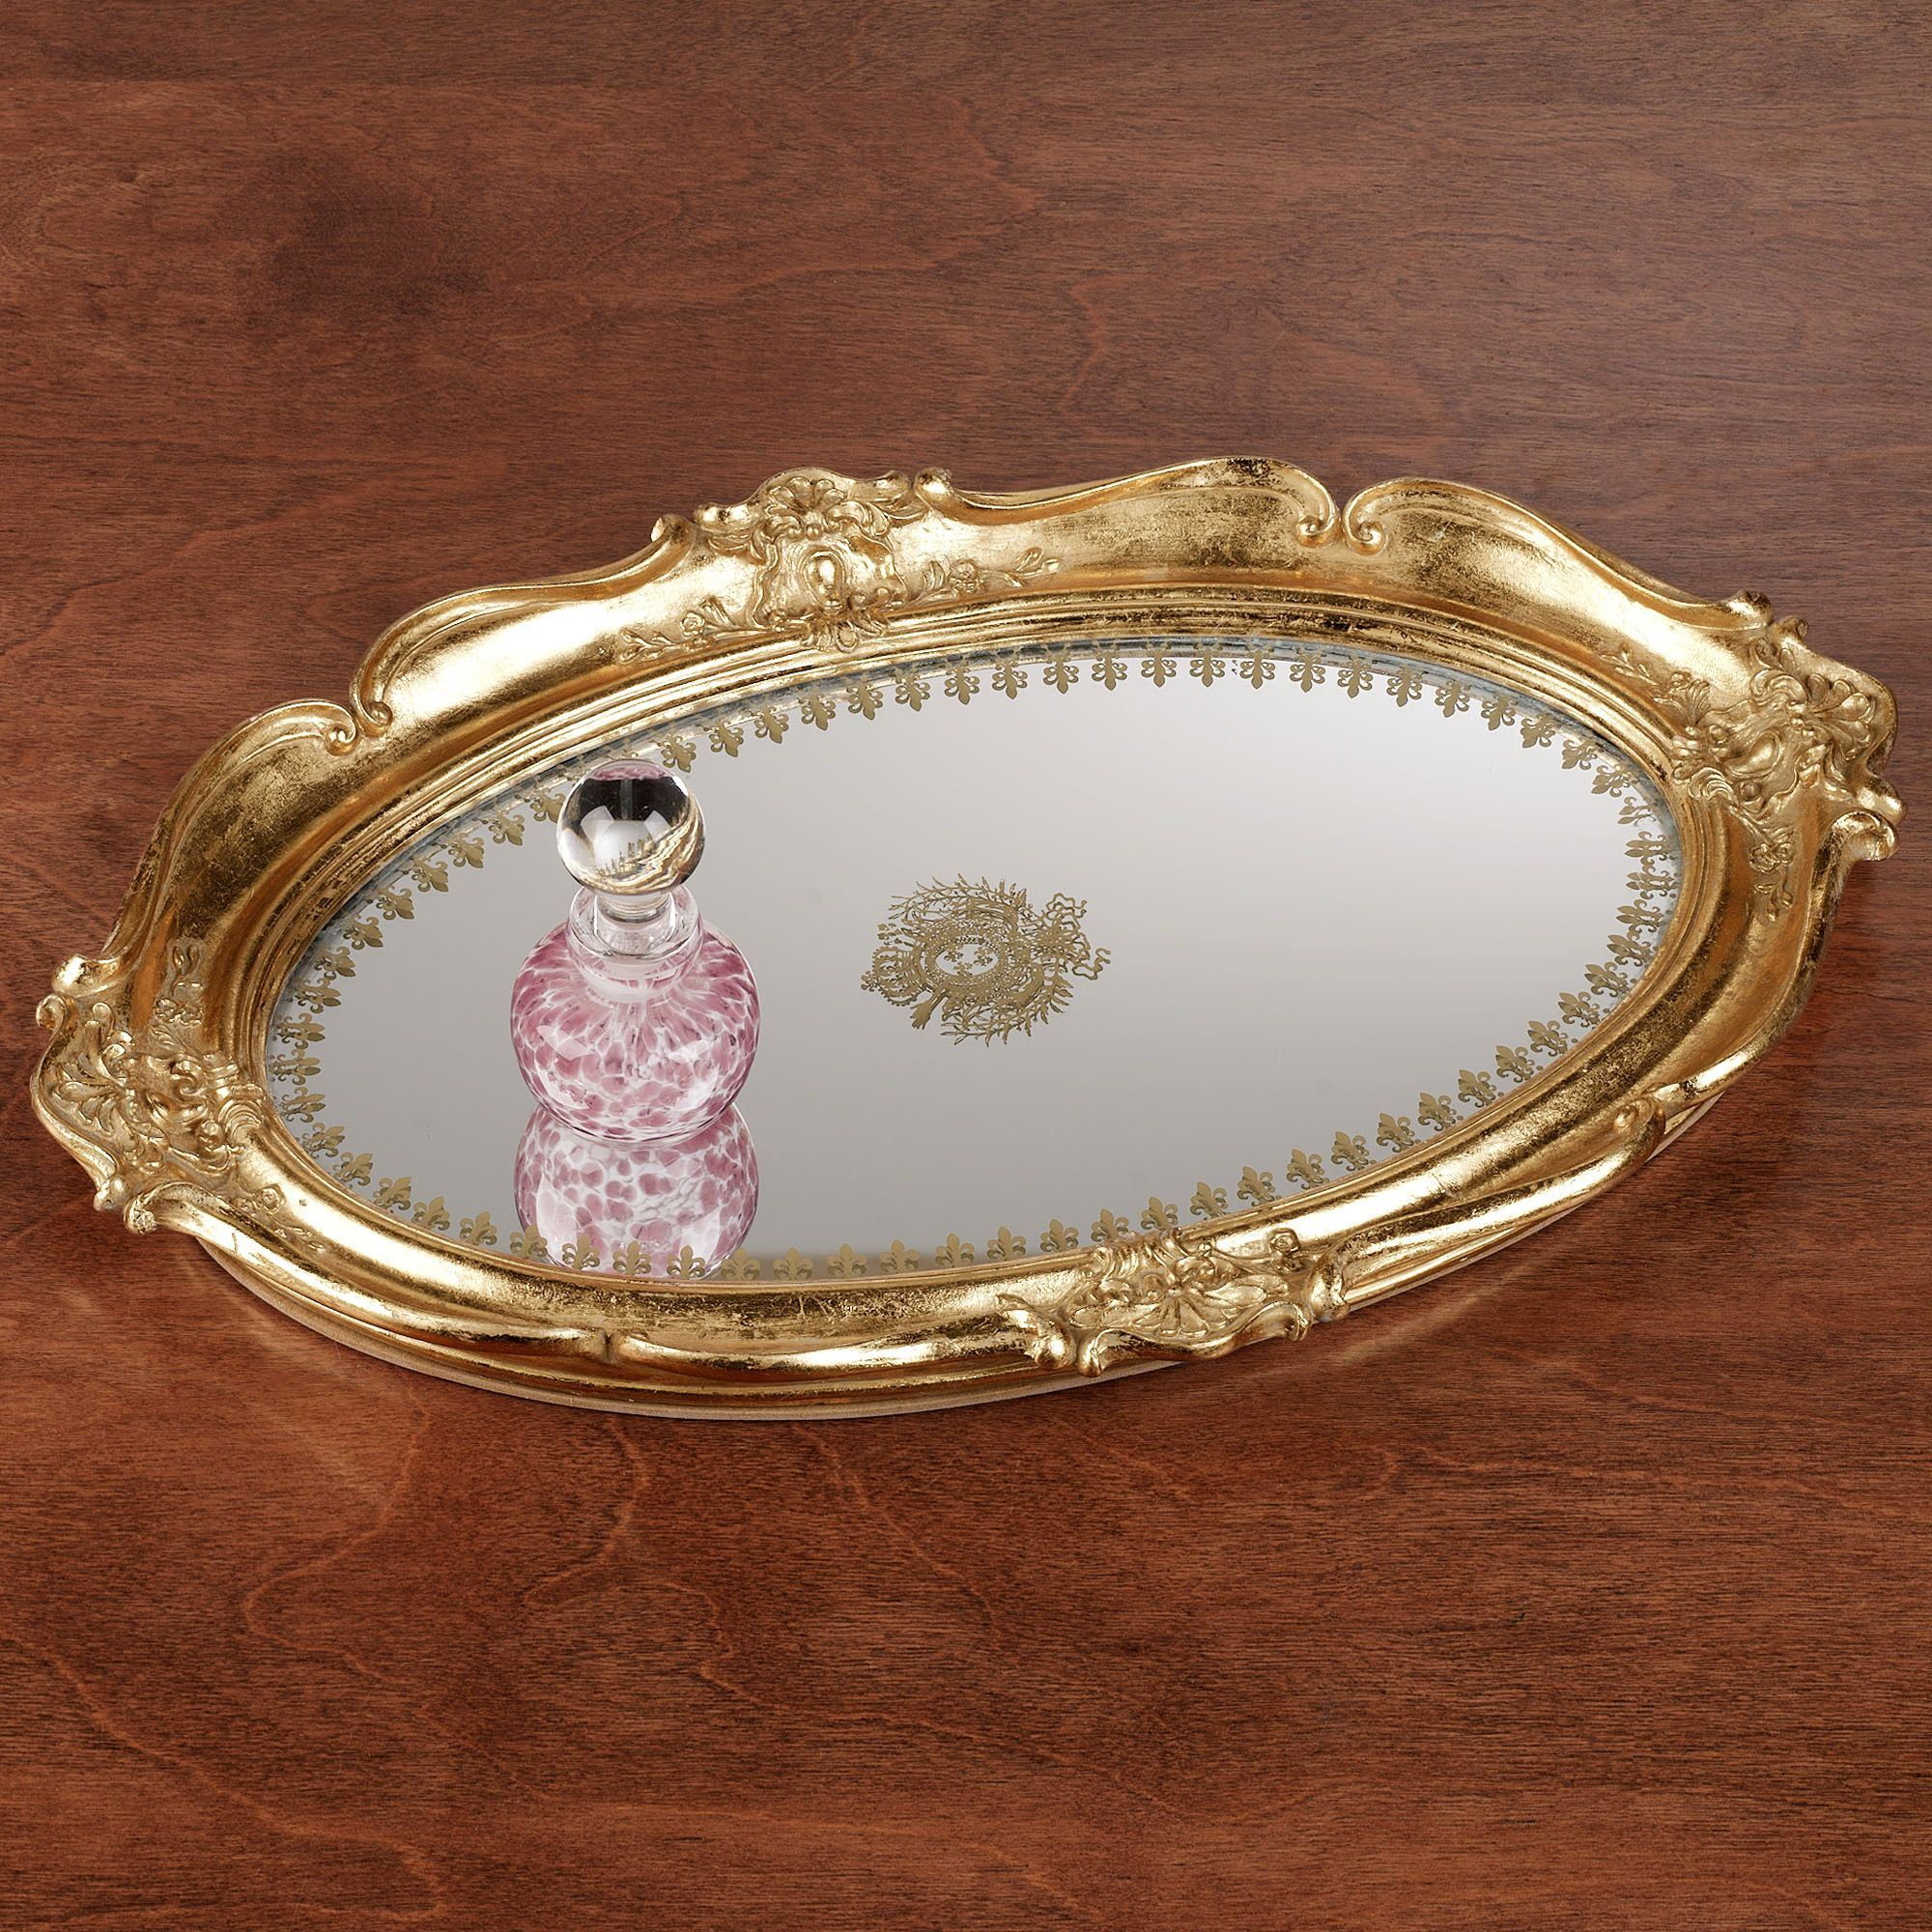 unique mirrored vanity tray alluring mirrored vanity tray admirable mirrored vanity tray